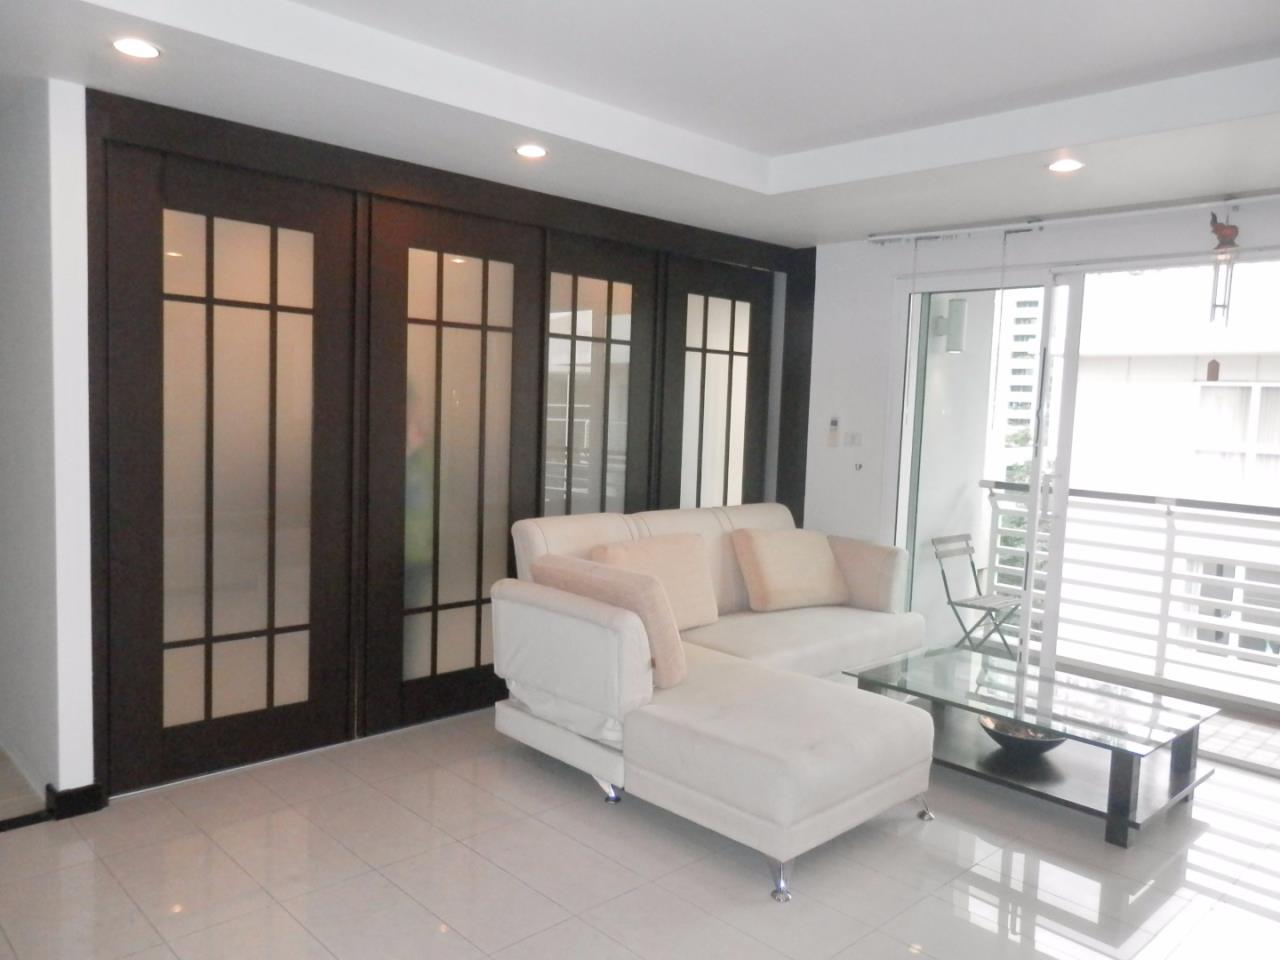 Century21 Skylux Agency's Avenue 61 / Condo For Rent / 3 Bedroom / 191 SQM / BTS Ekkamai / Bangkok 2